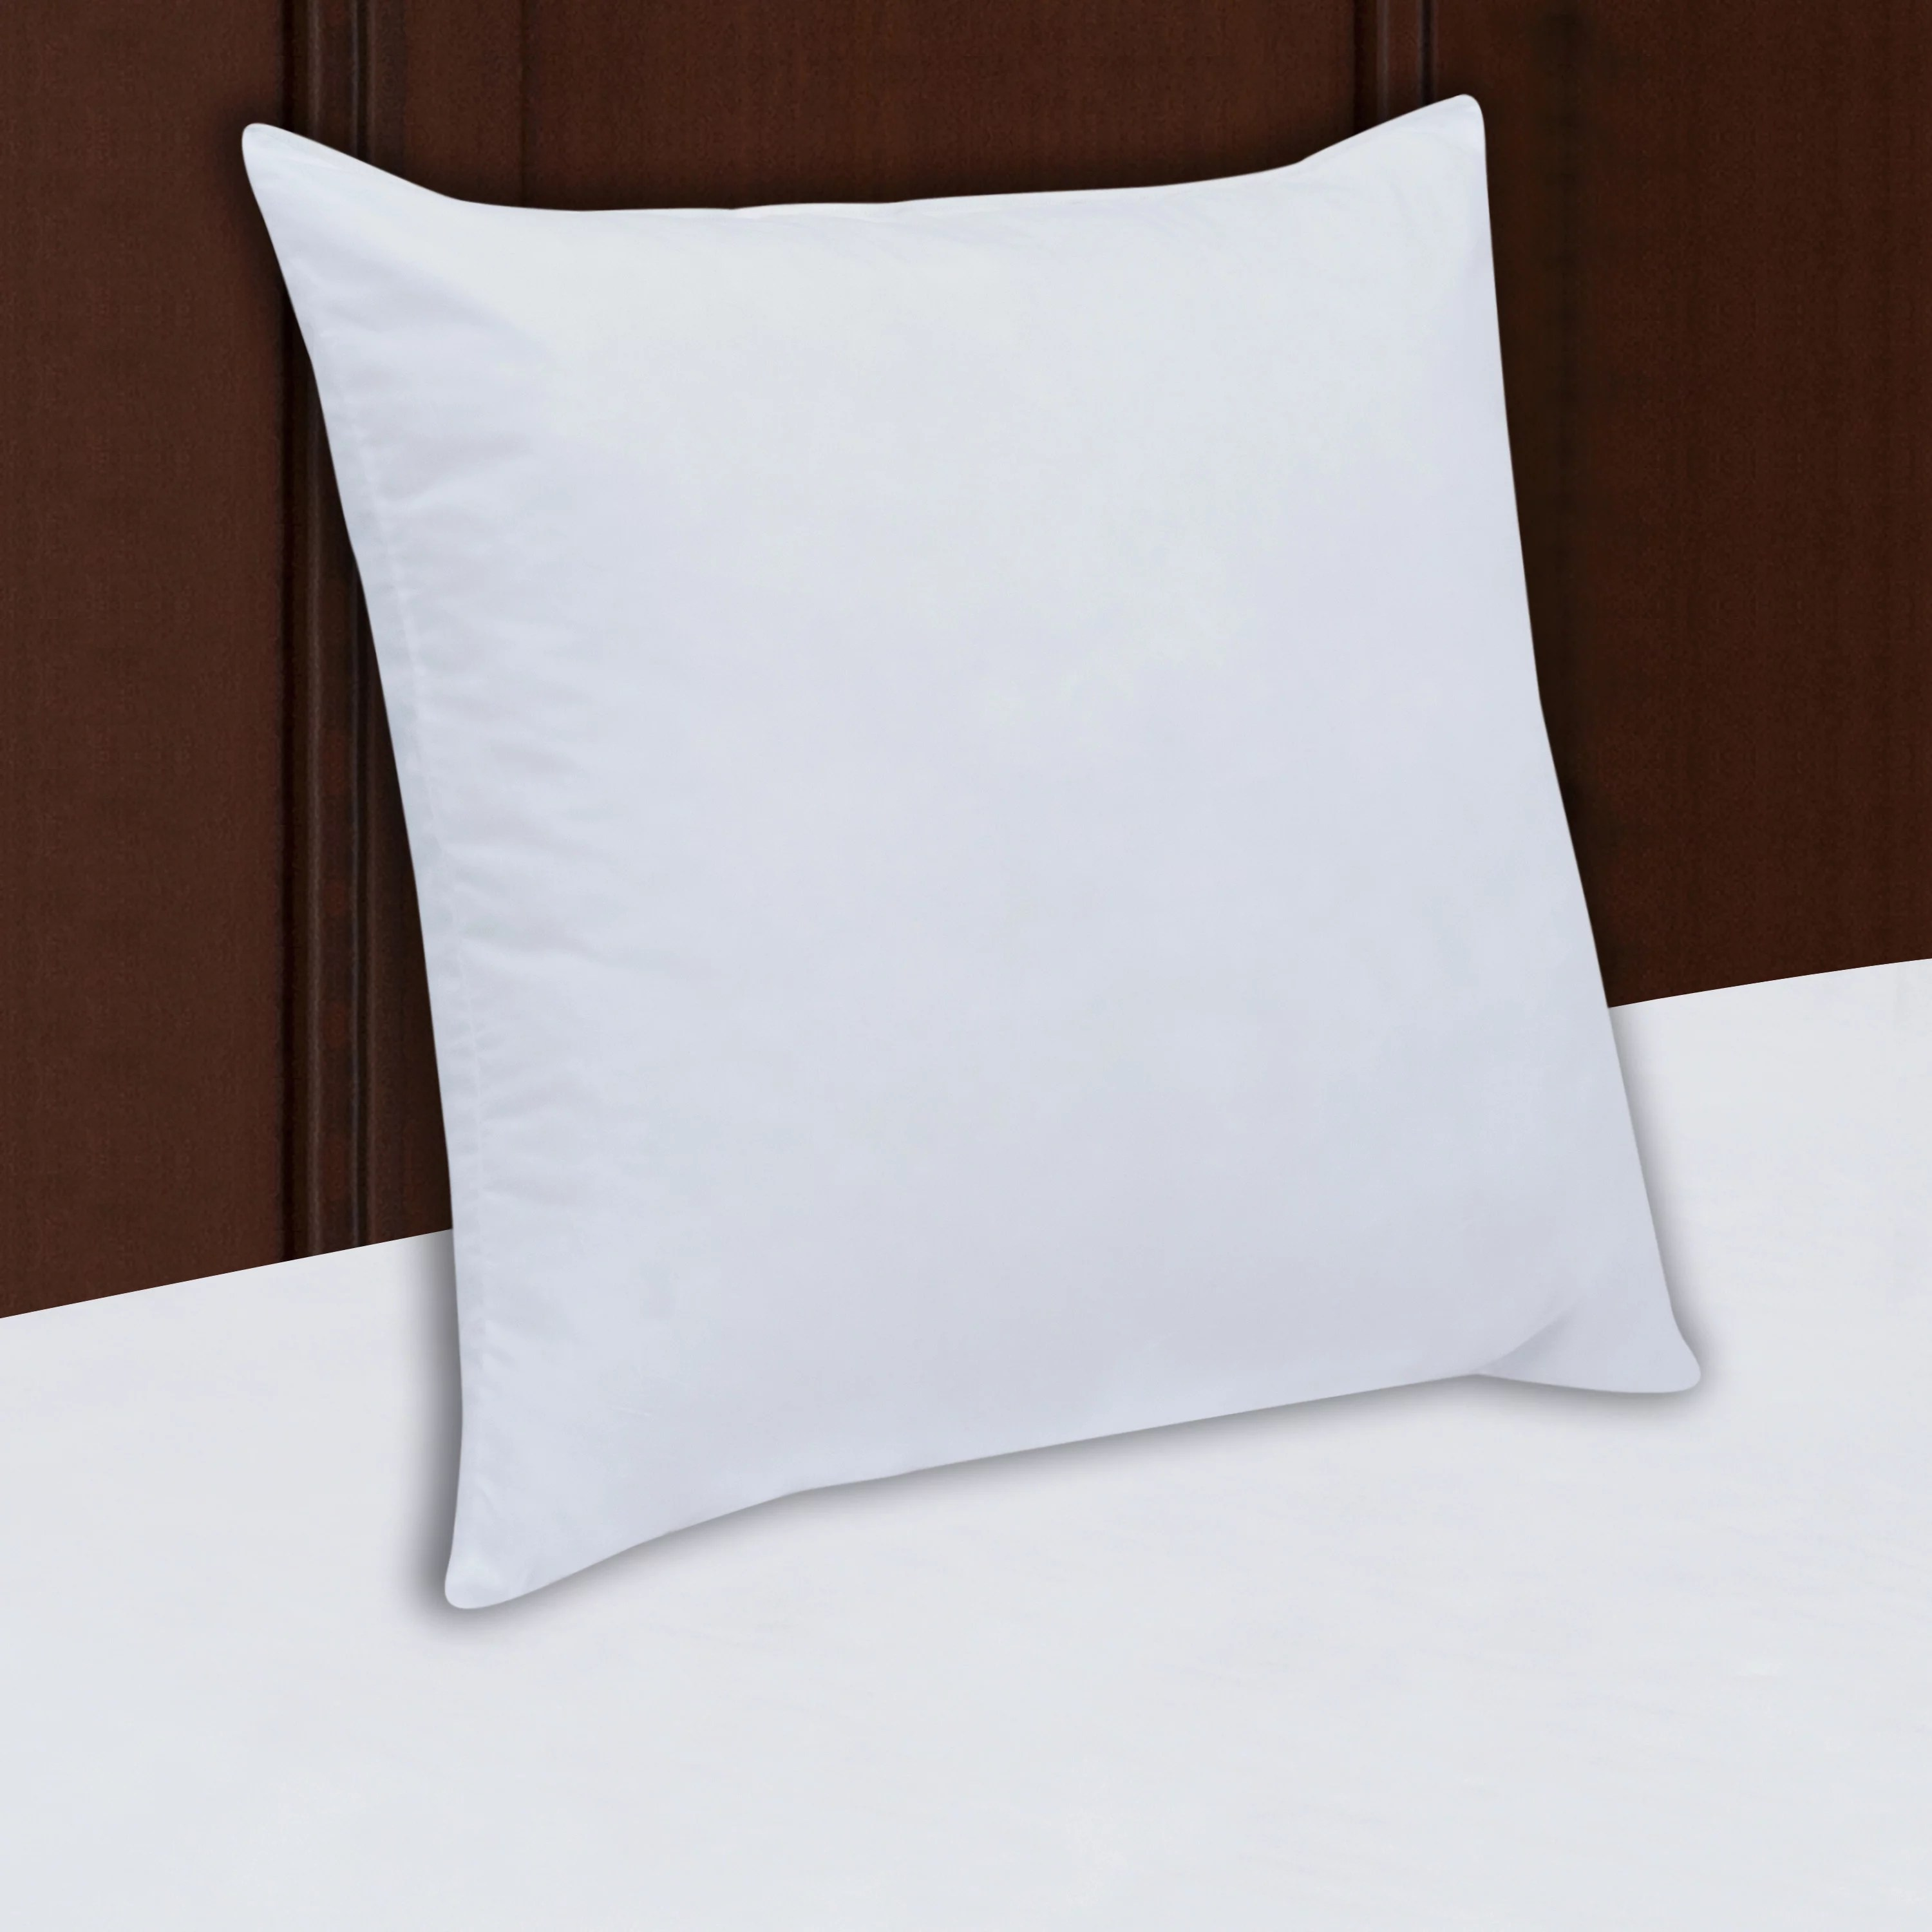 mainstays decorative pillow insert in 100 polyester 16 x16